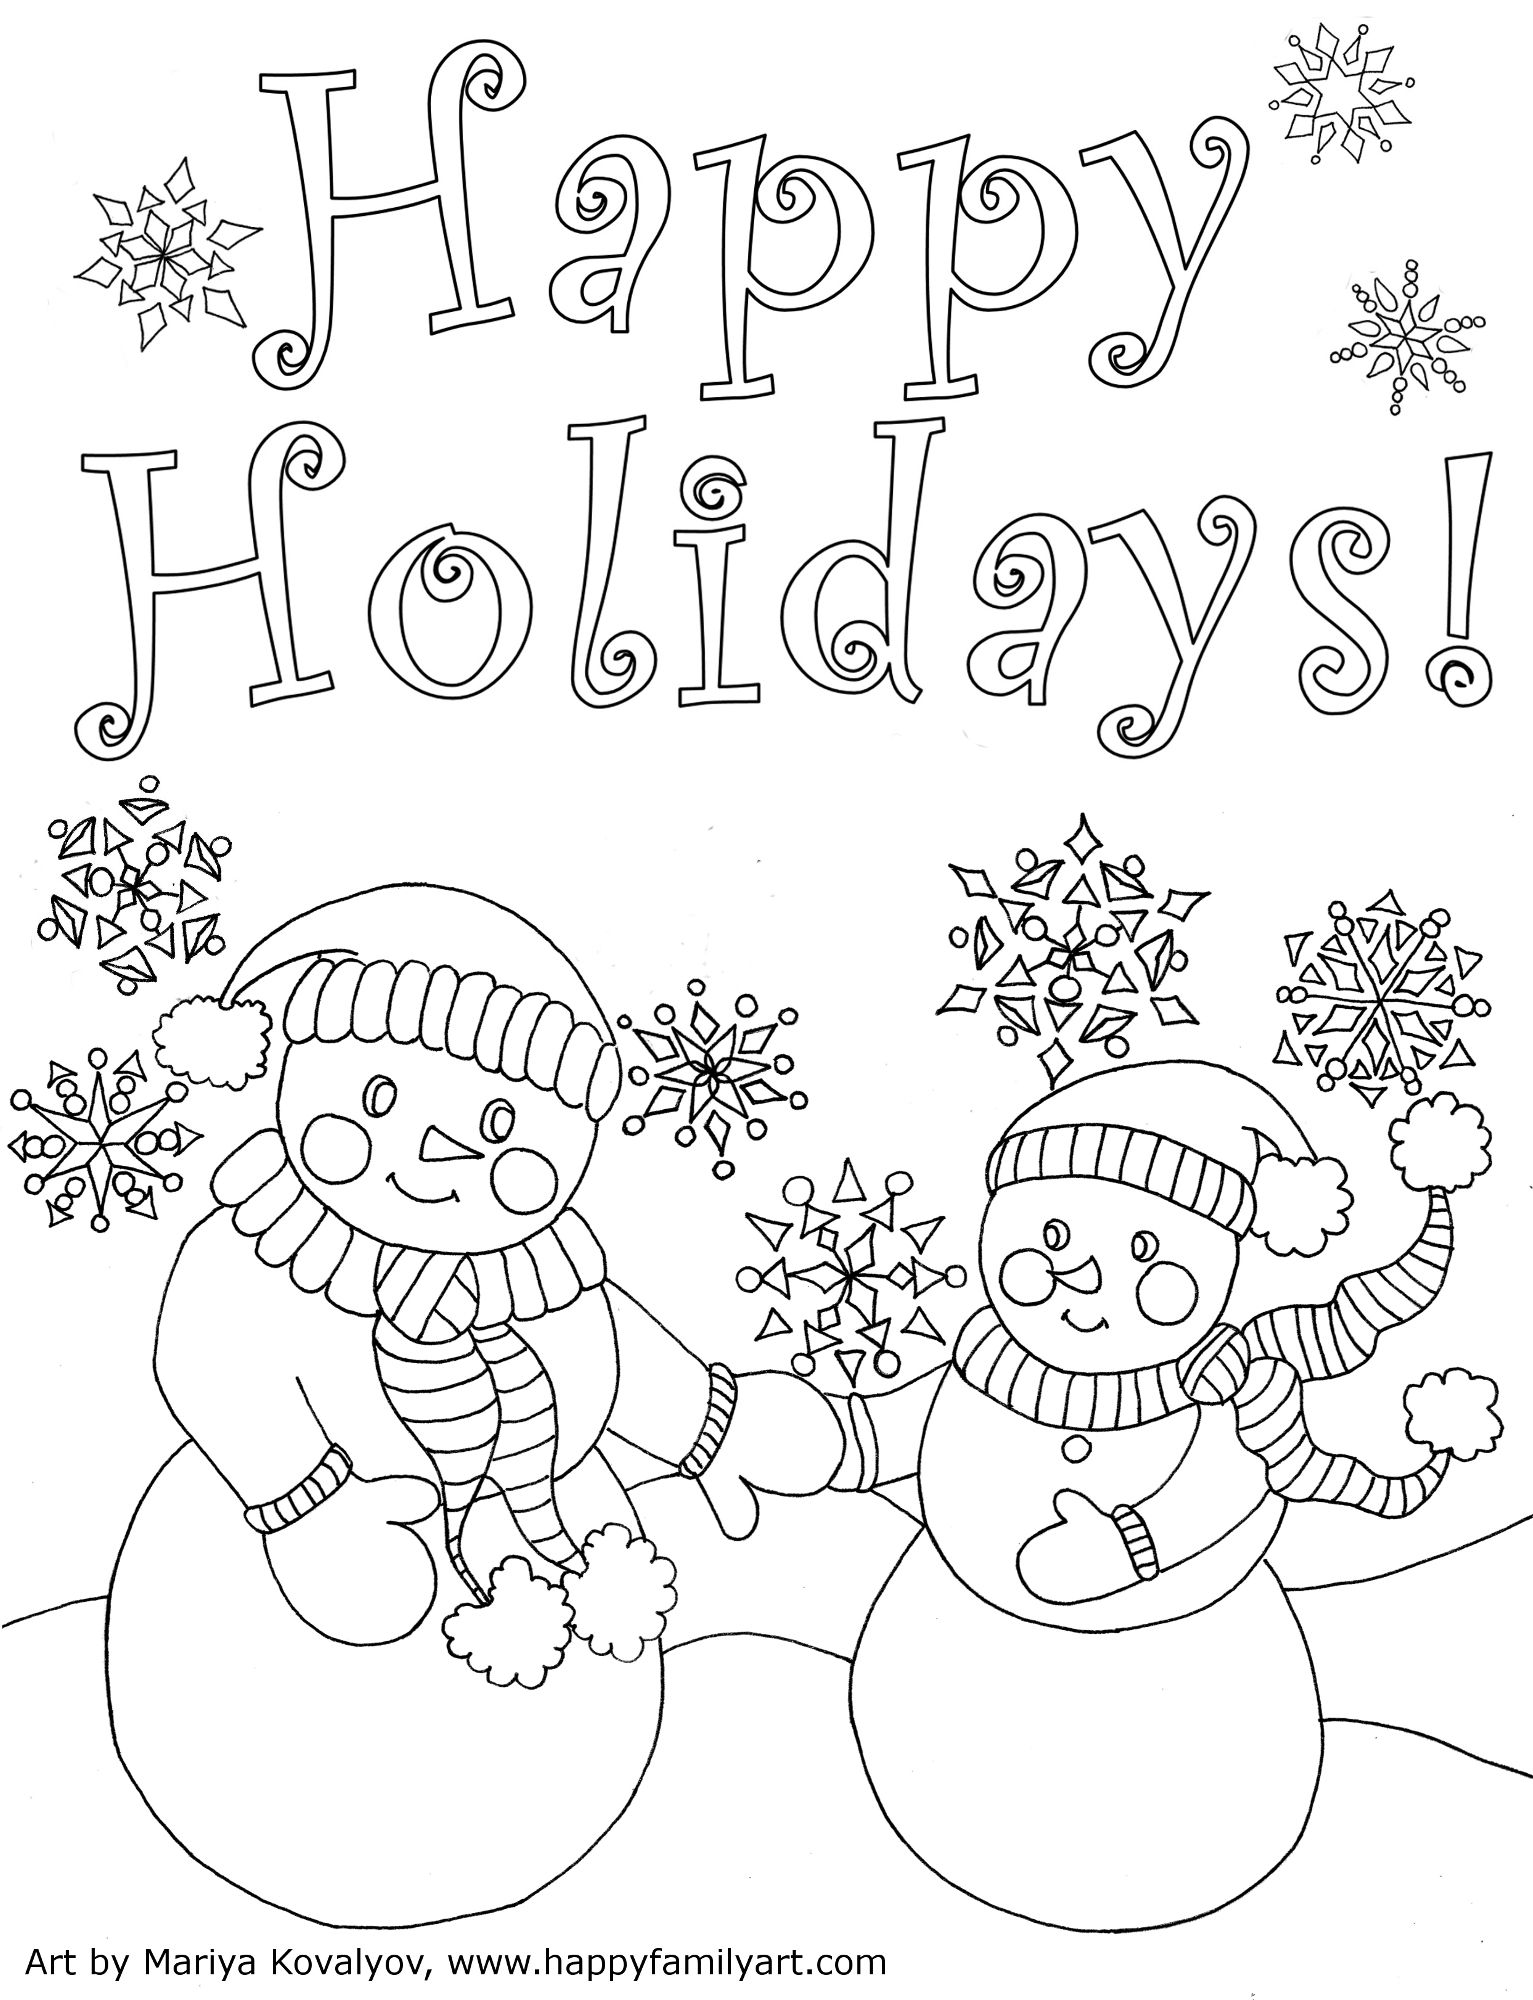 Happy Family Art Original And Fun Coloring Pages Cool Coloring Pages Printable Christmas Coloring Pages Christmas Coloring Cards